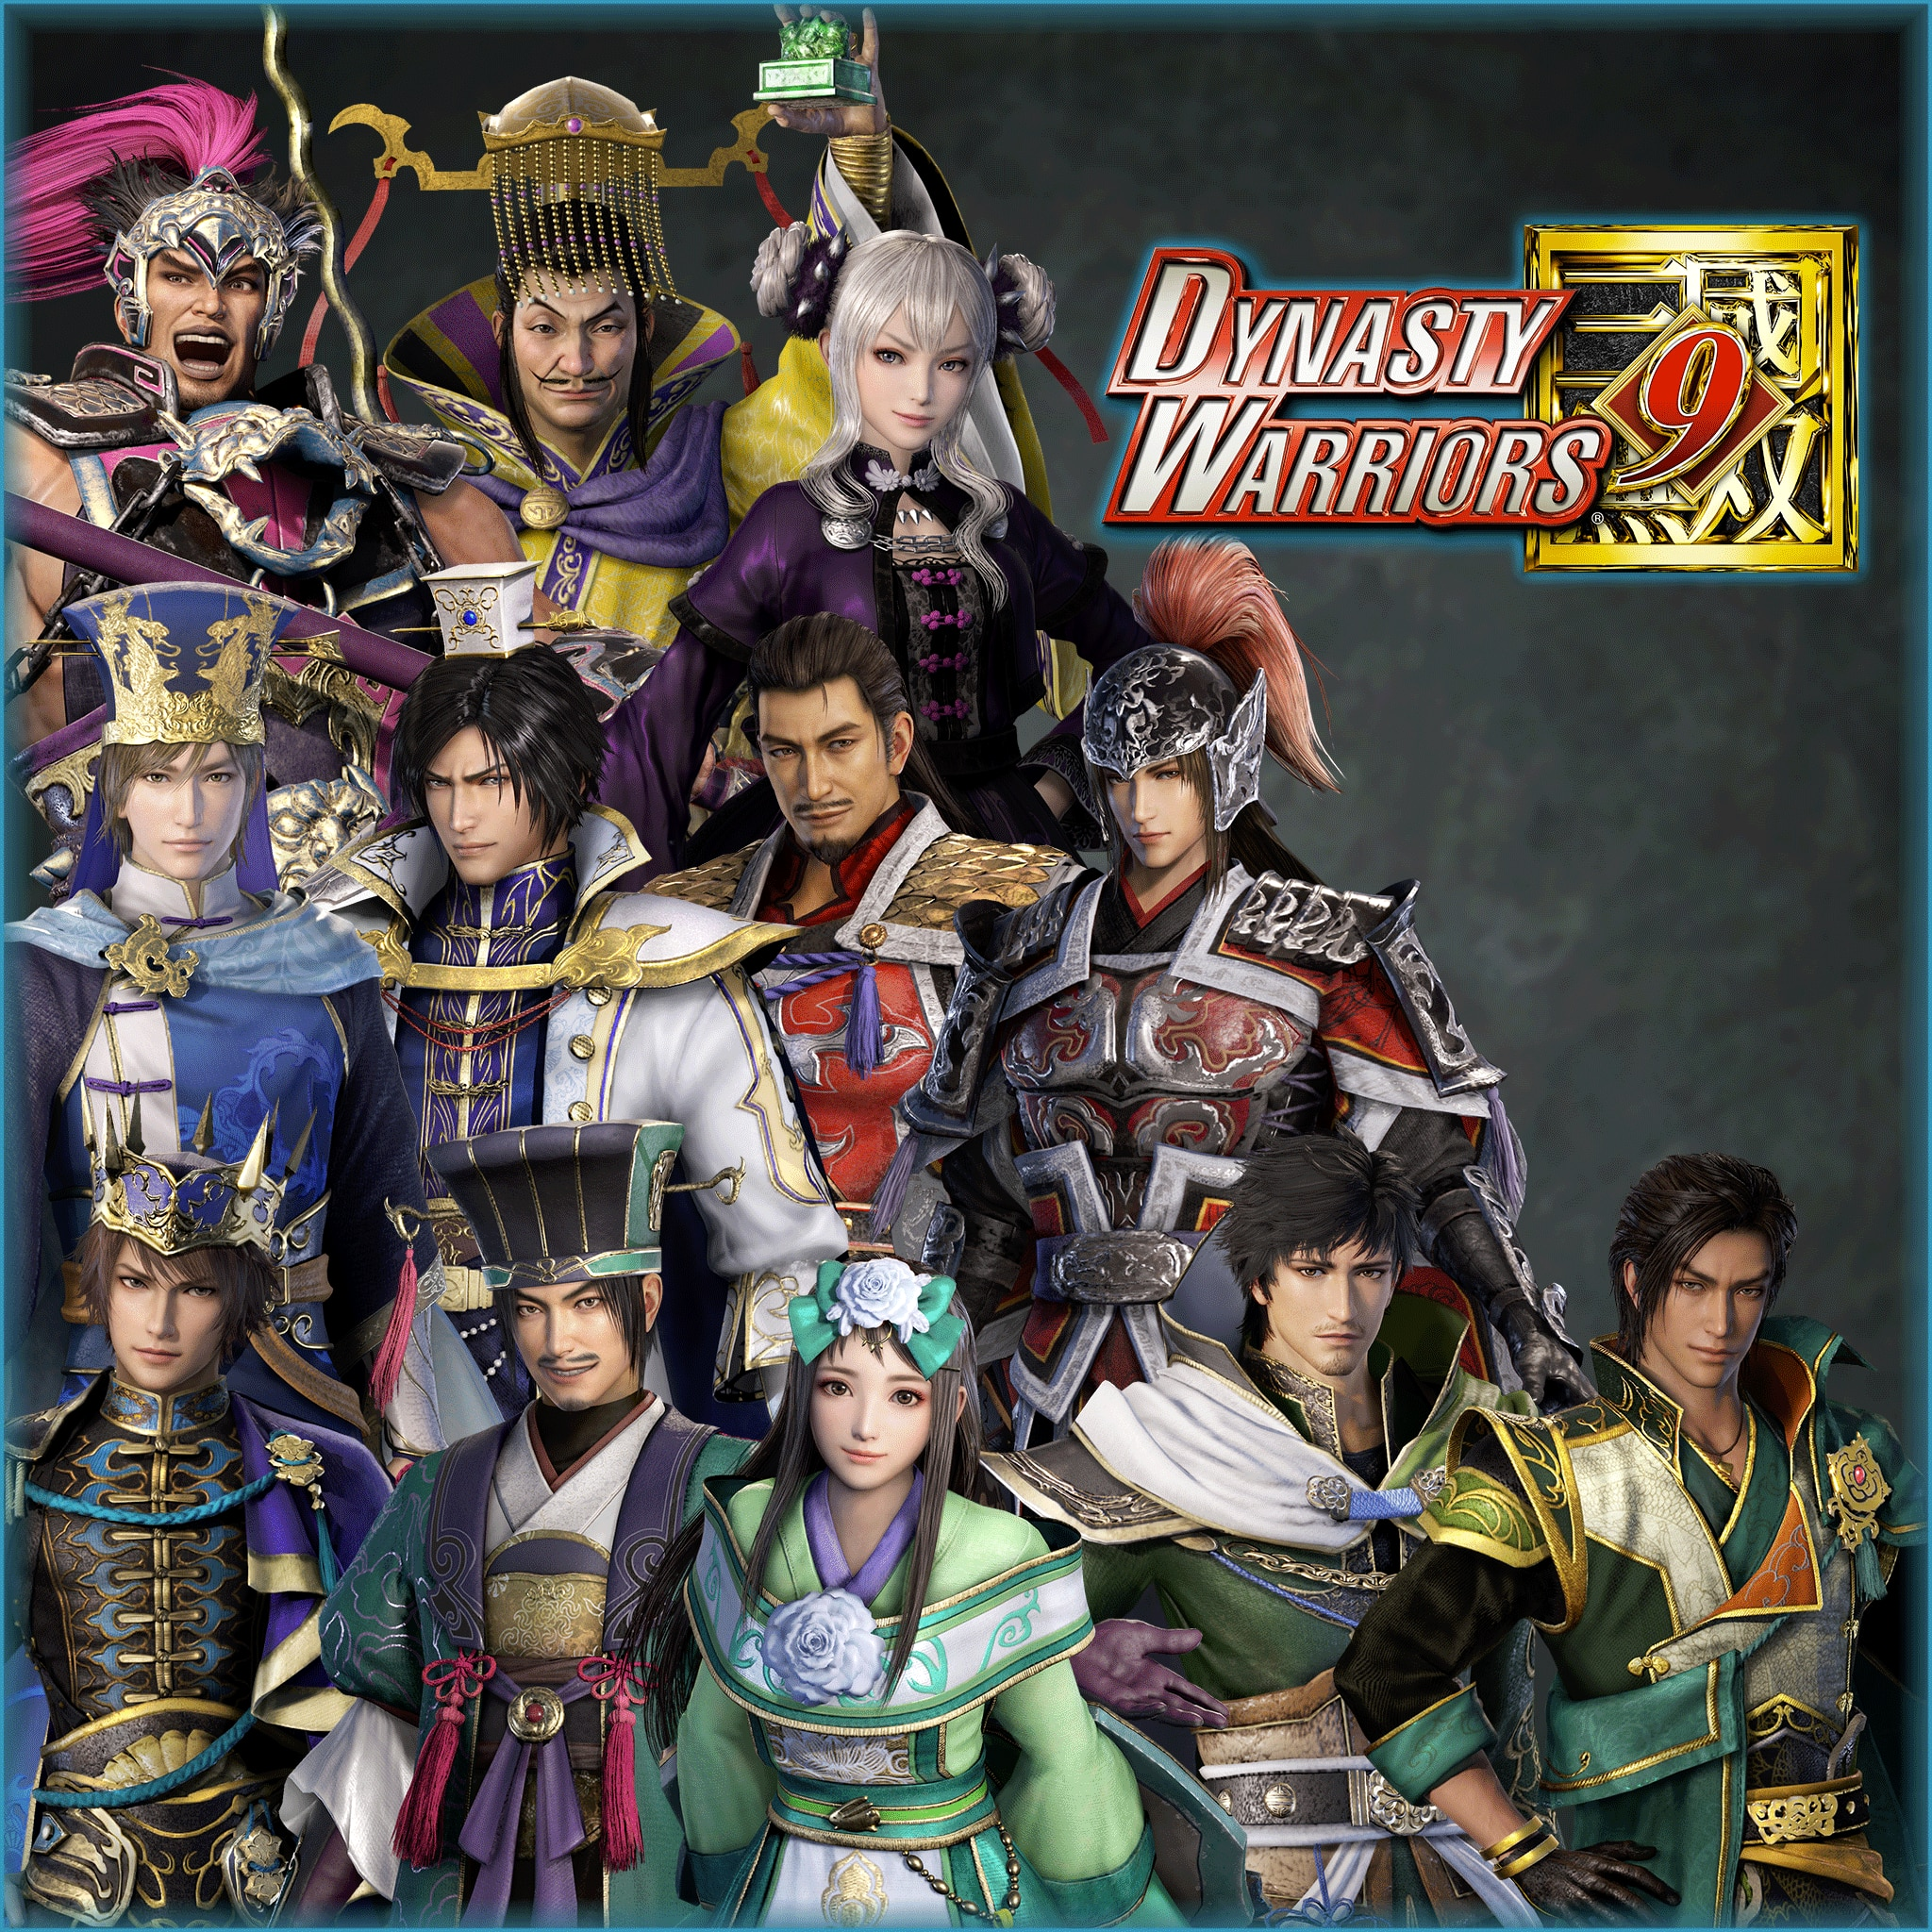 DYNASTY WARRIORS 9: Additional Scenarios Set